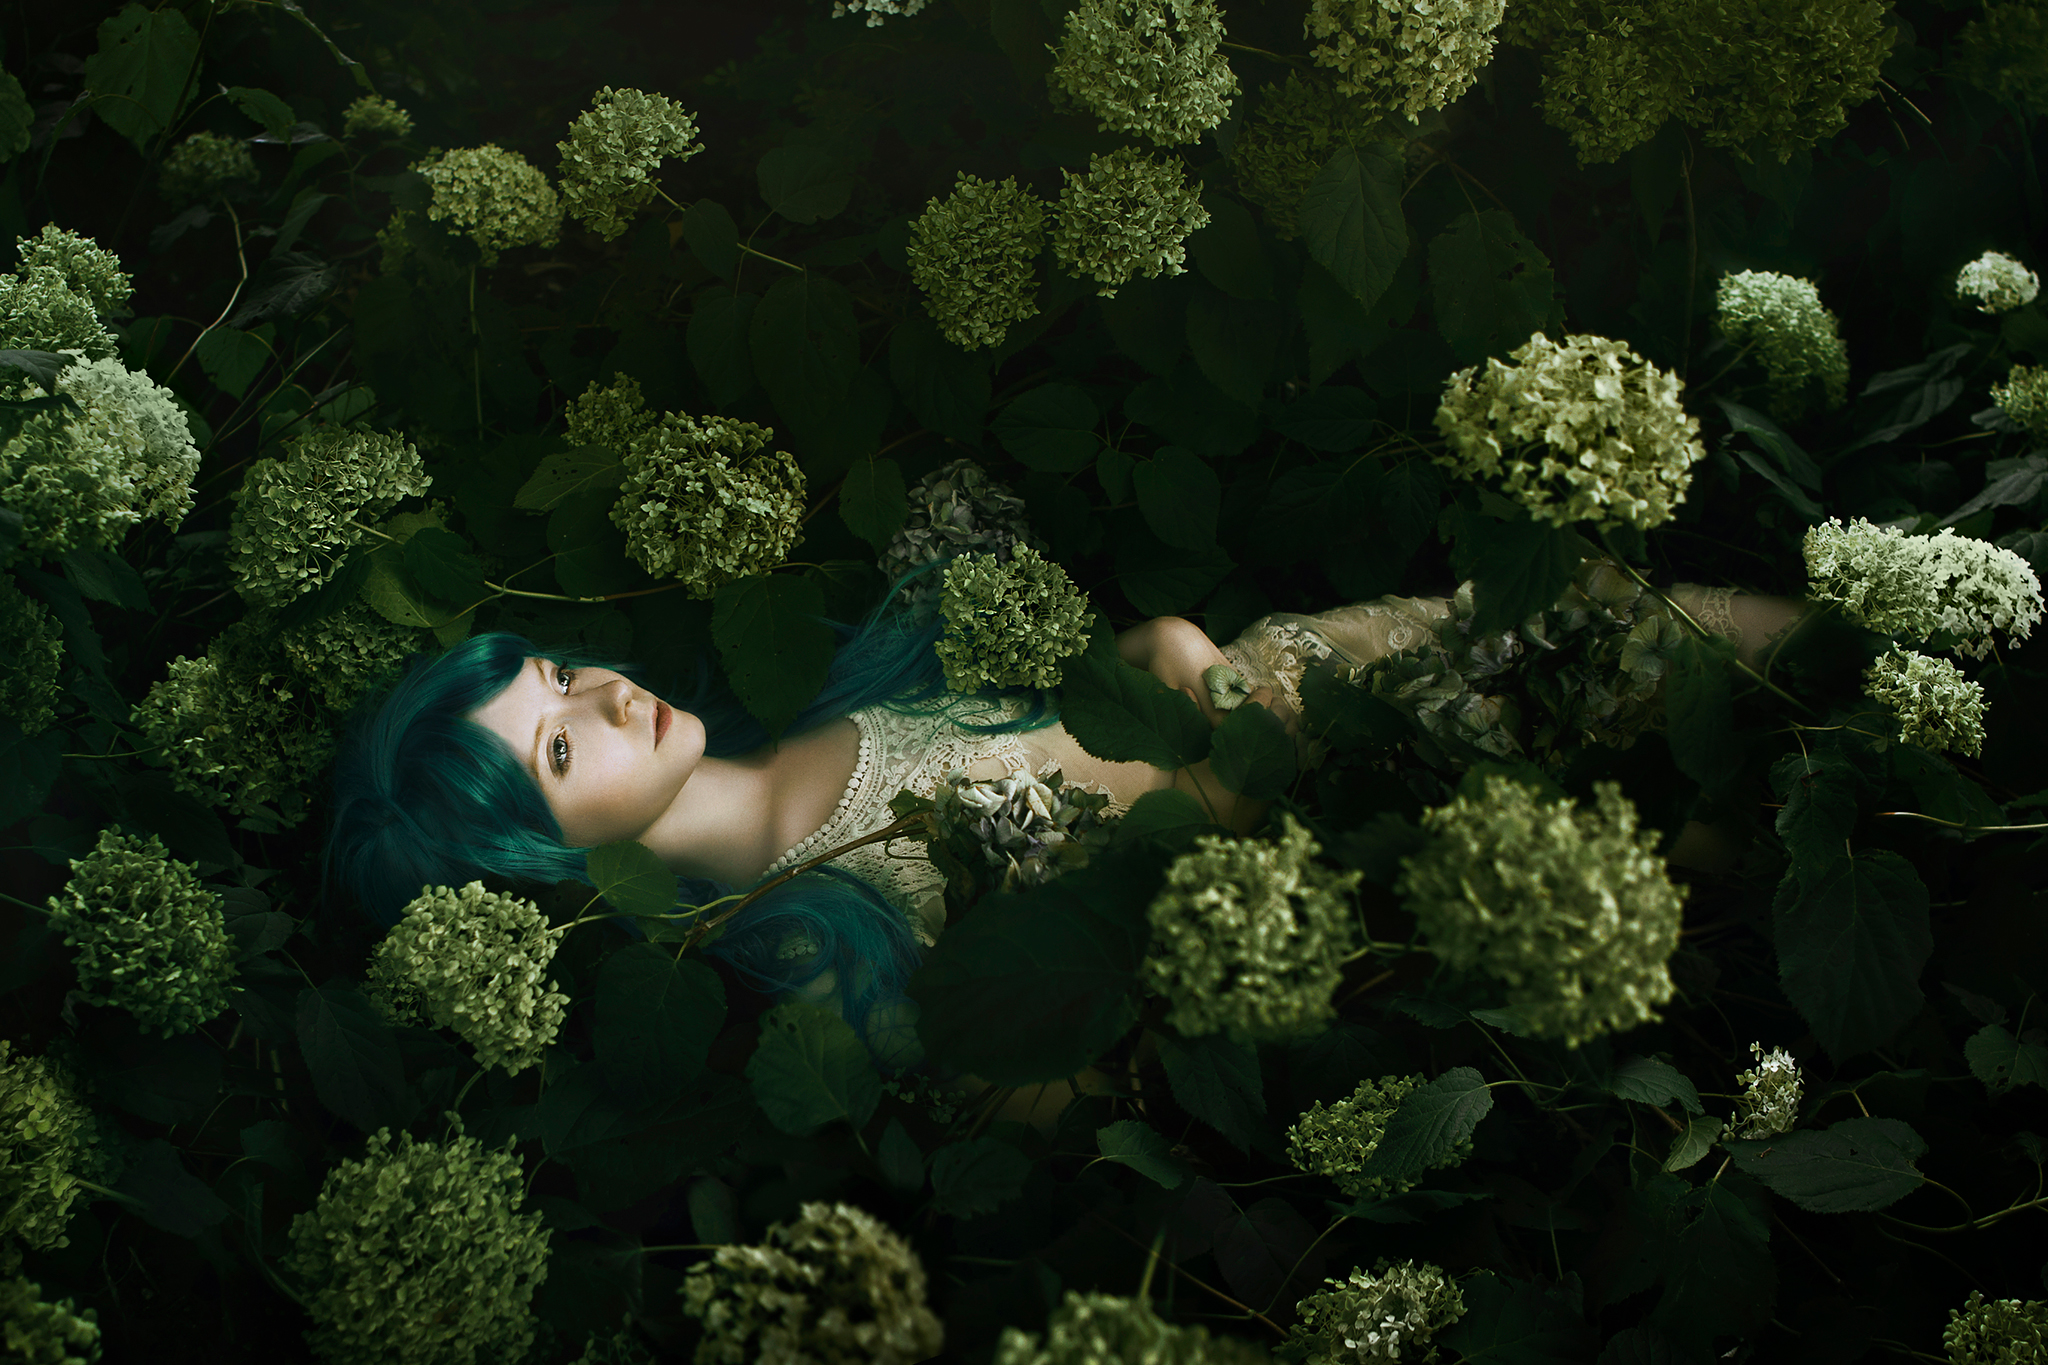 Breathing light   -   Bella Kotak.  Limited edition 60 x 80cm print- 1 of 10. £320 - print only. To order - contact:  info@elementstudios.co.uk